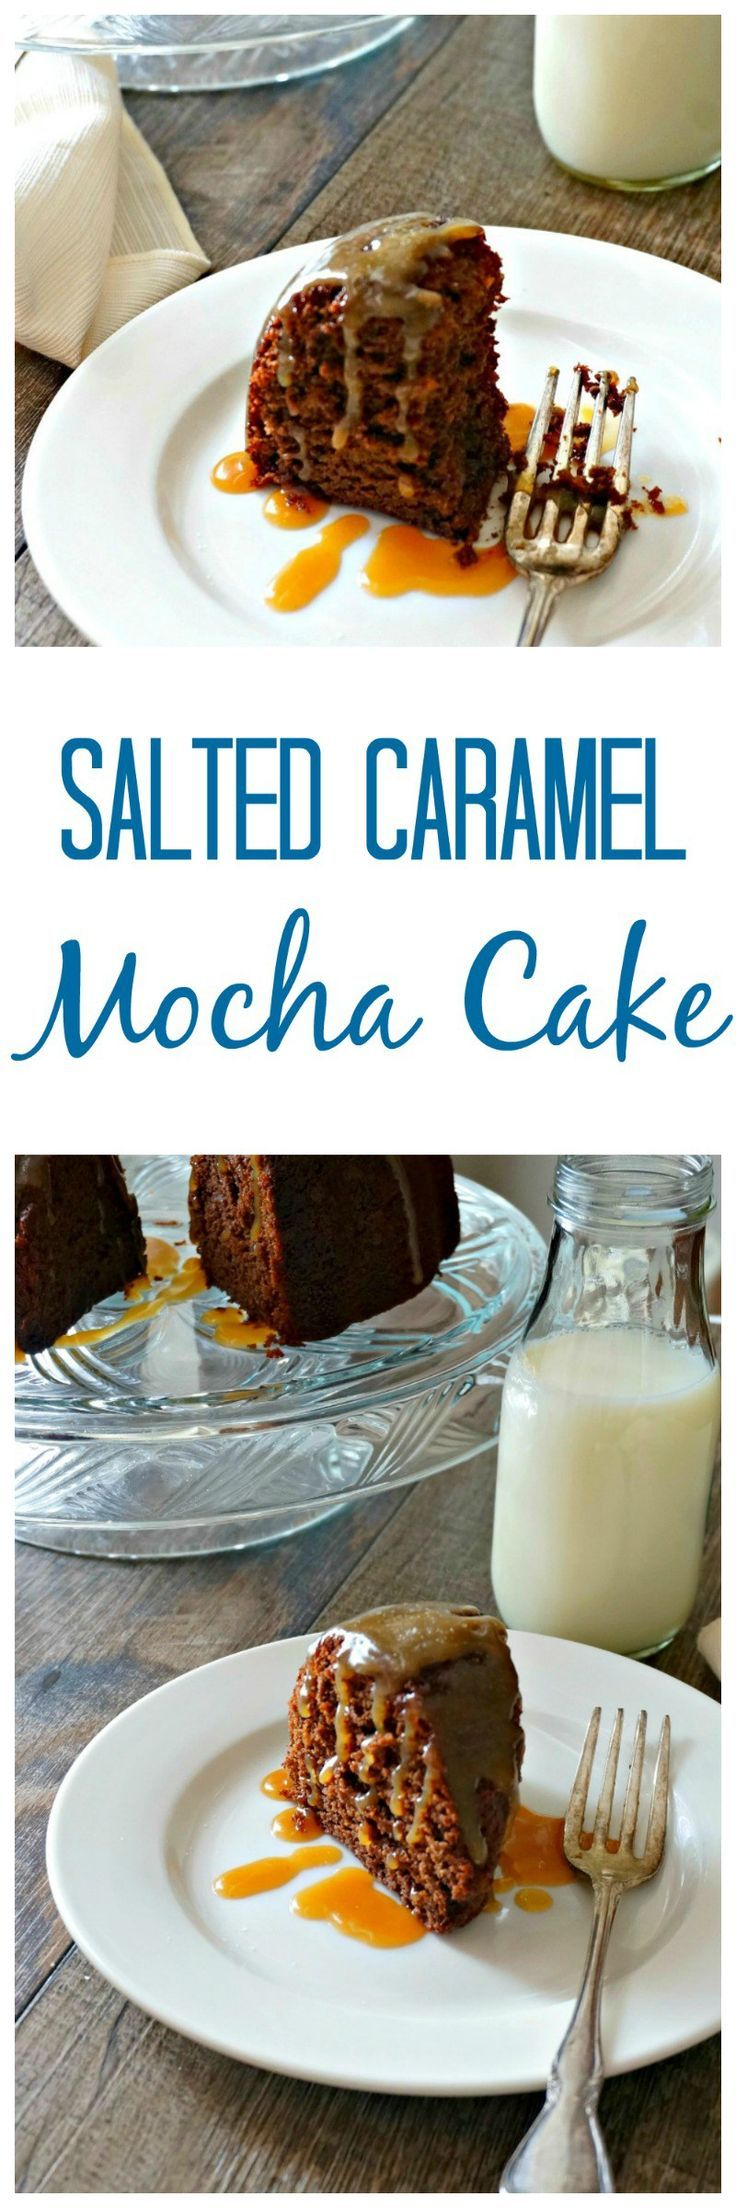 Salted Caramel Mocha Bundt Cake: A moist chocolate cake with hints of mocha is topped with a homemade salted caramel sauce for an insanely good cake--made from scratch.